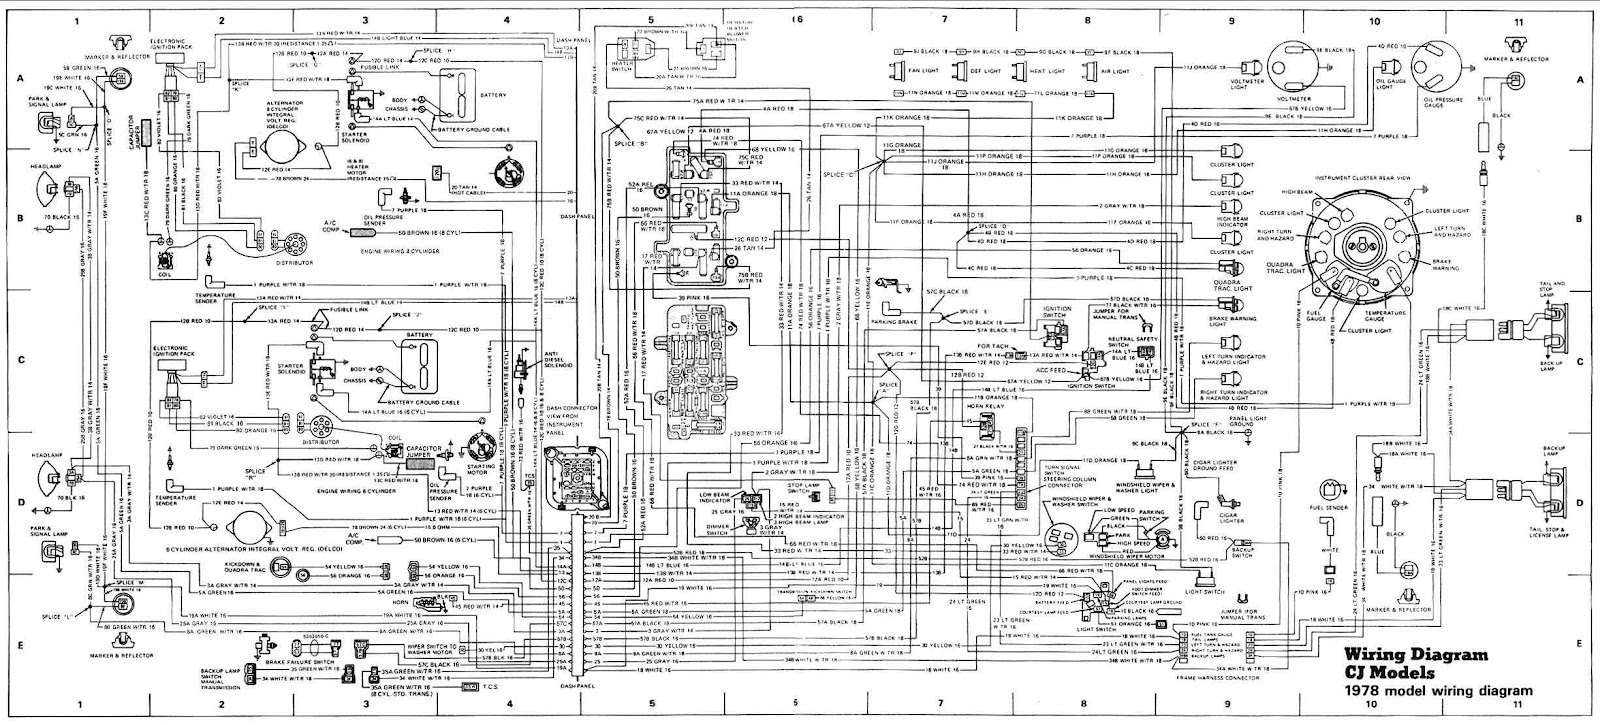 wiring diagram 2003 wrangler xy 9898  electric choke cj7 wiring diagram free download wiring  electric choke cj7 wiring diagram free